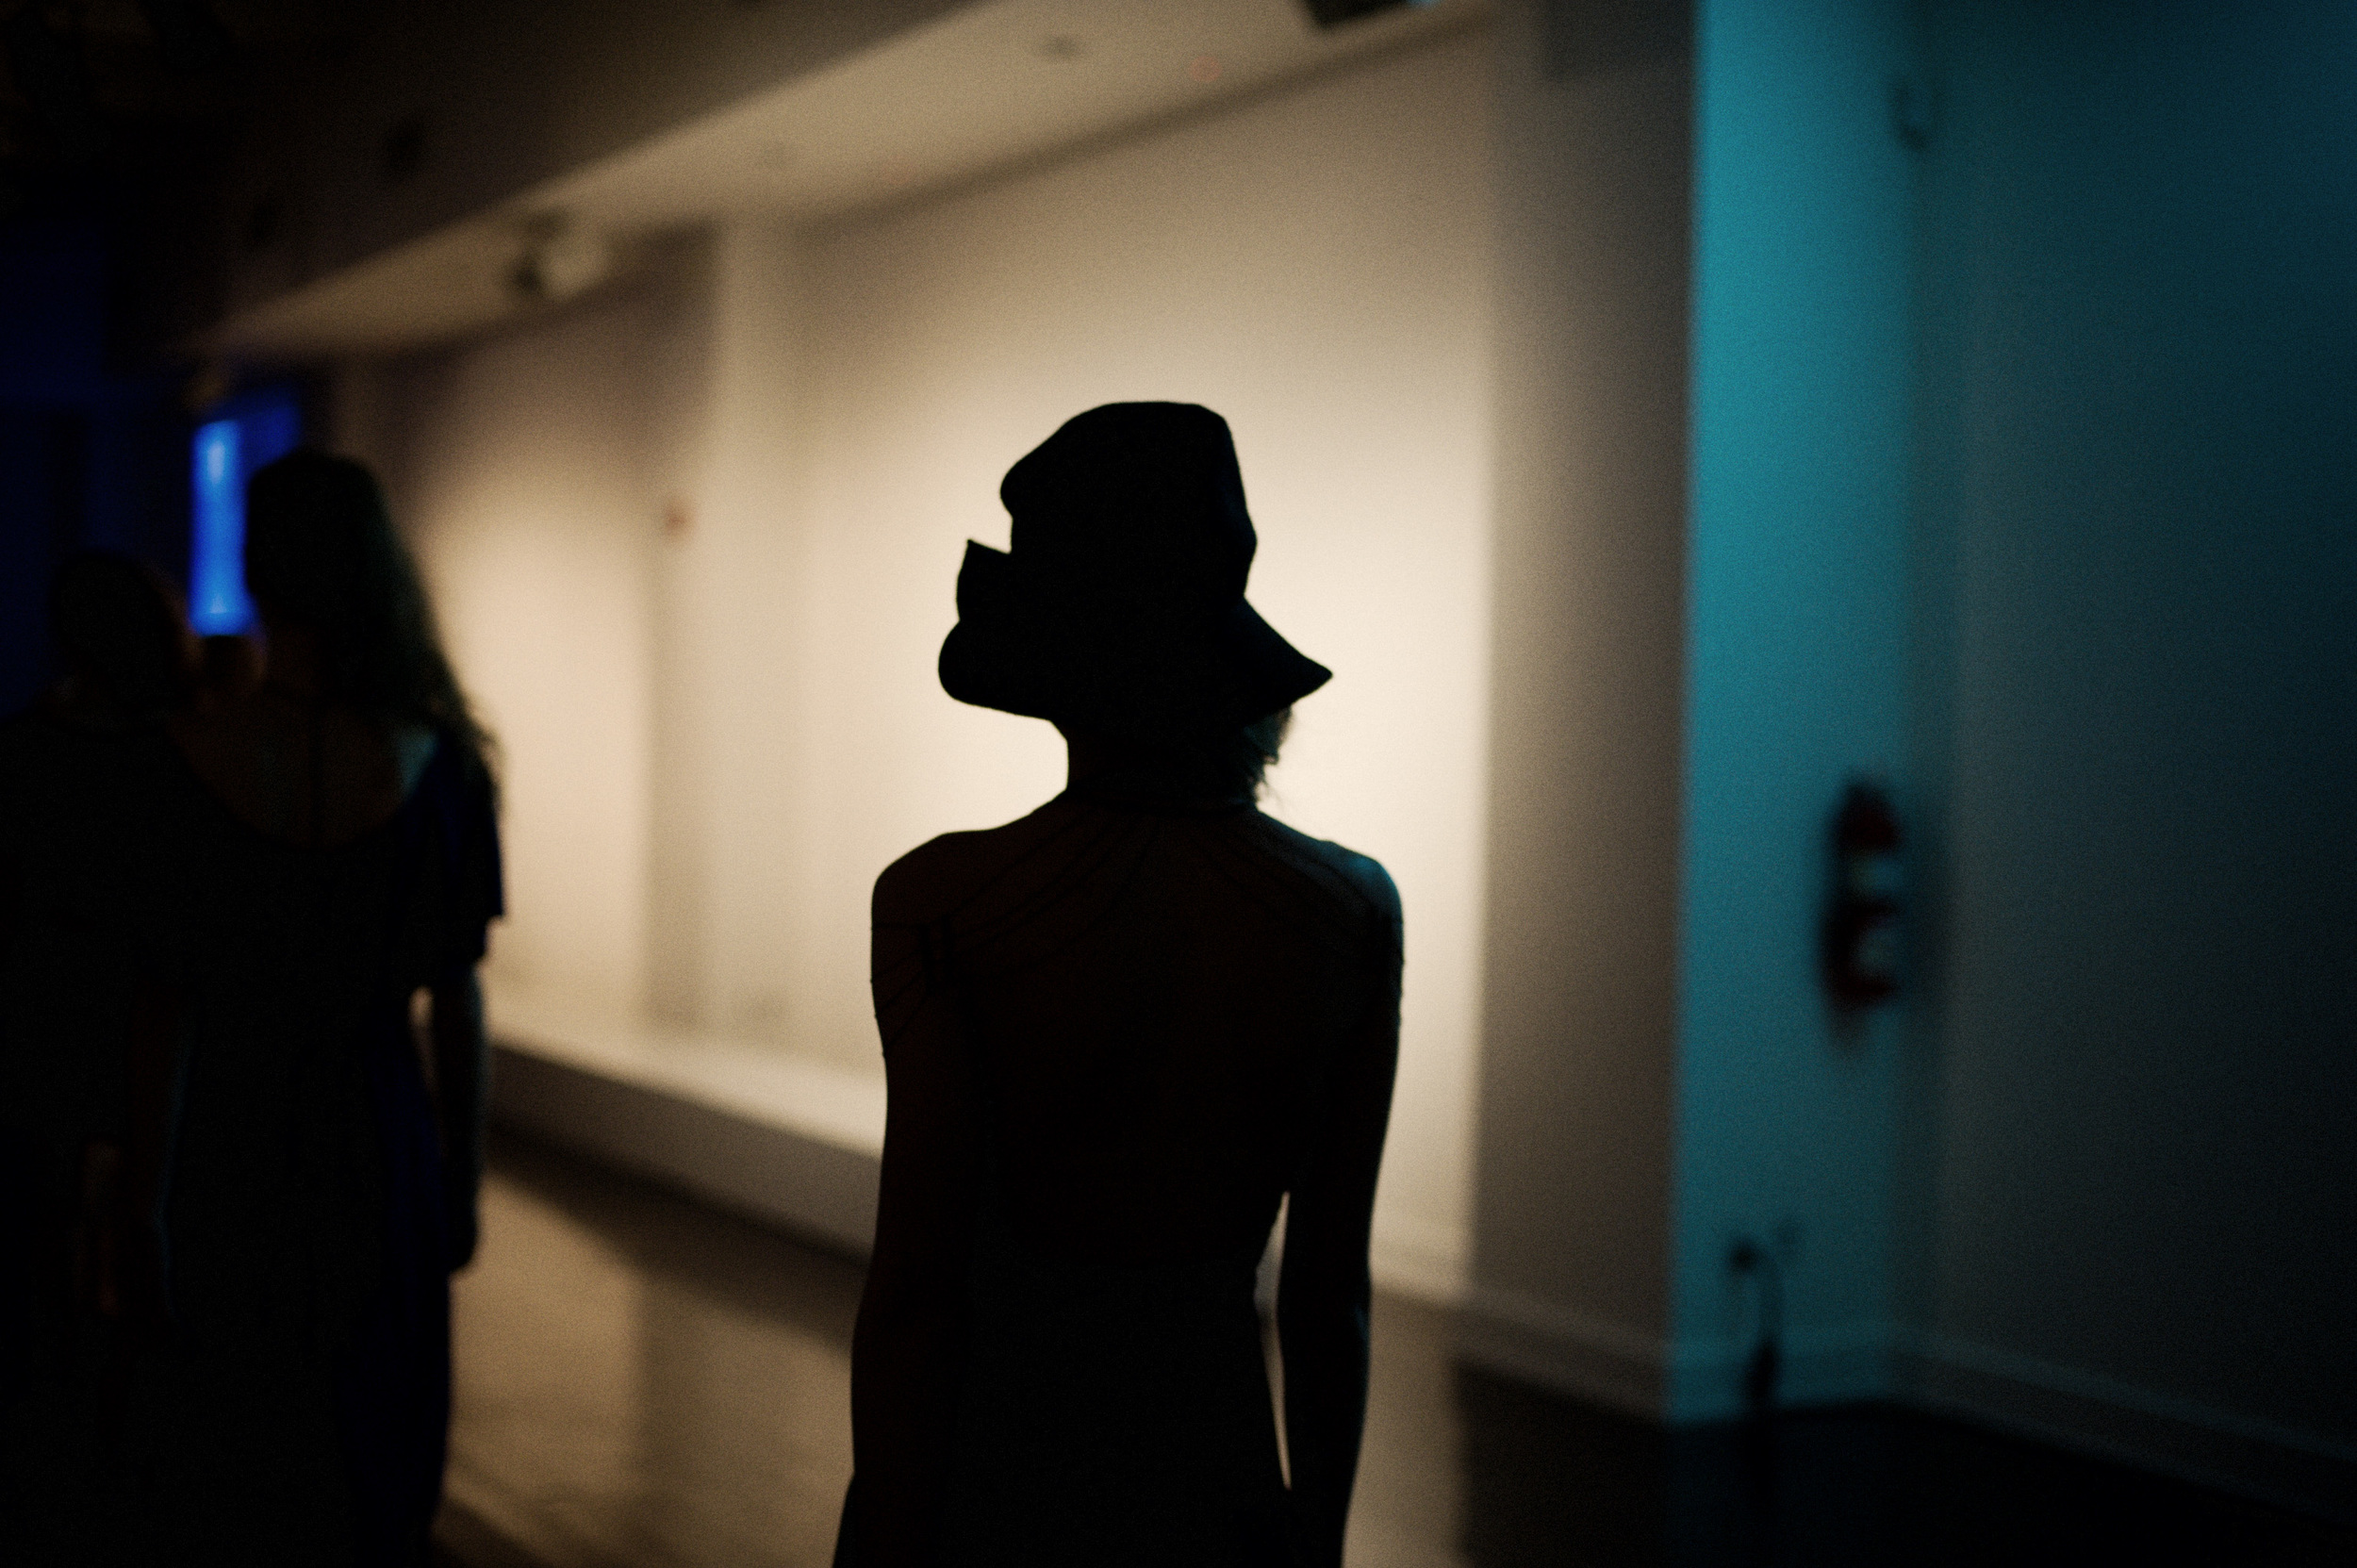 A model waits backstage at a fashion show. Photography by: Shawn Brackbill.